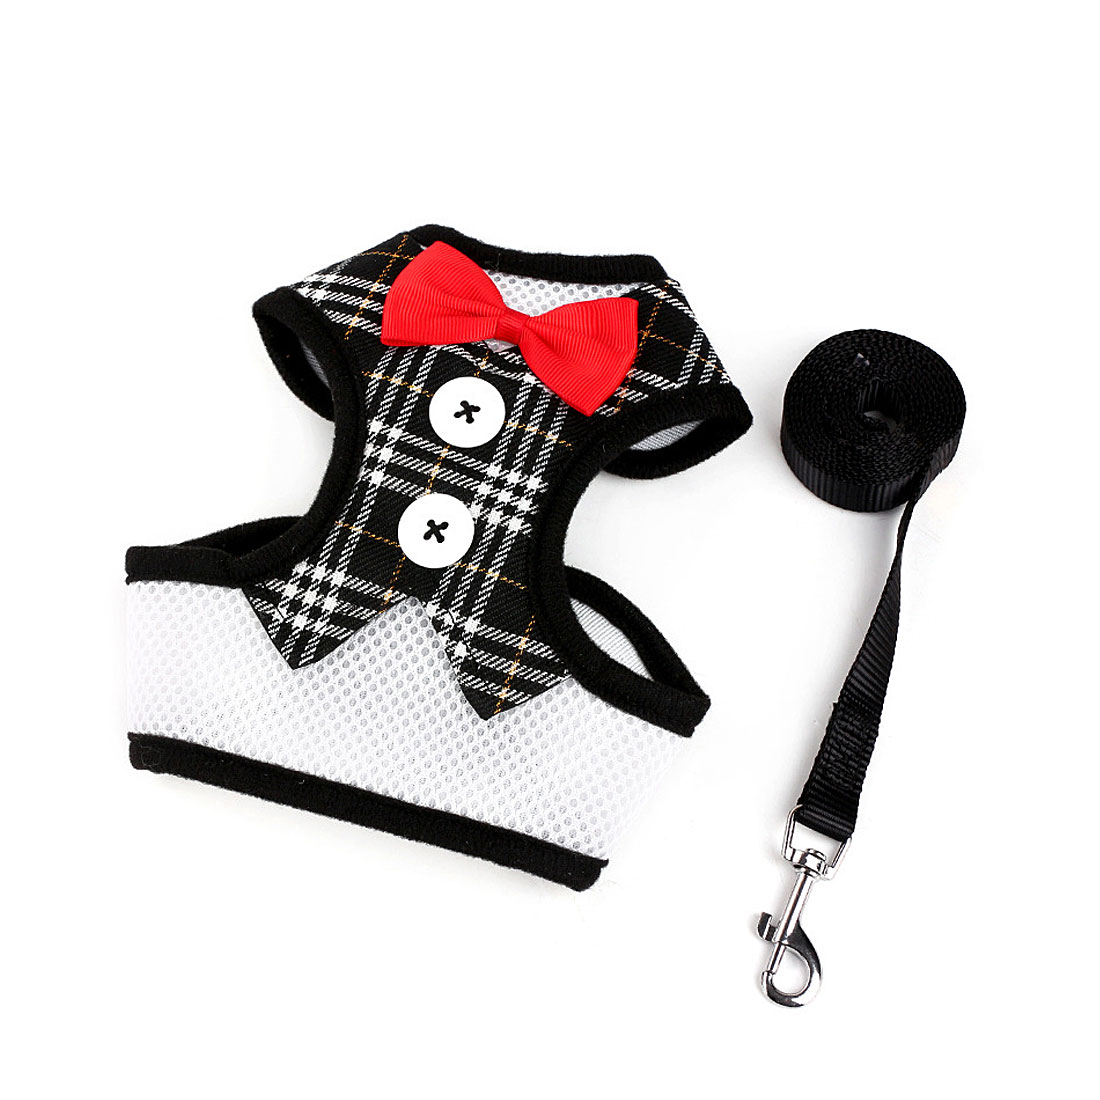 Adjustable Padded Small Dog Harness Breathable Dog Vest Bowtie Gentleman Suit Black Grid M